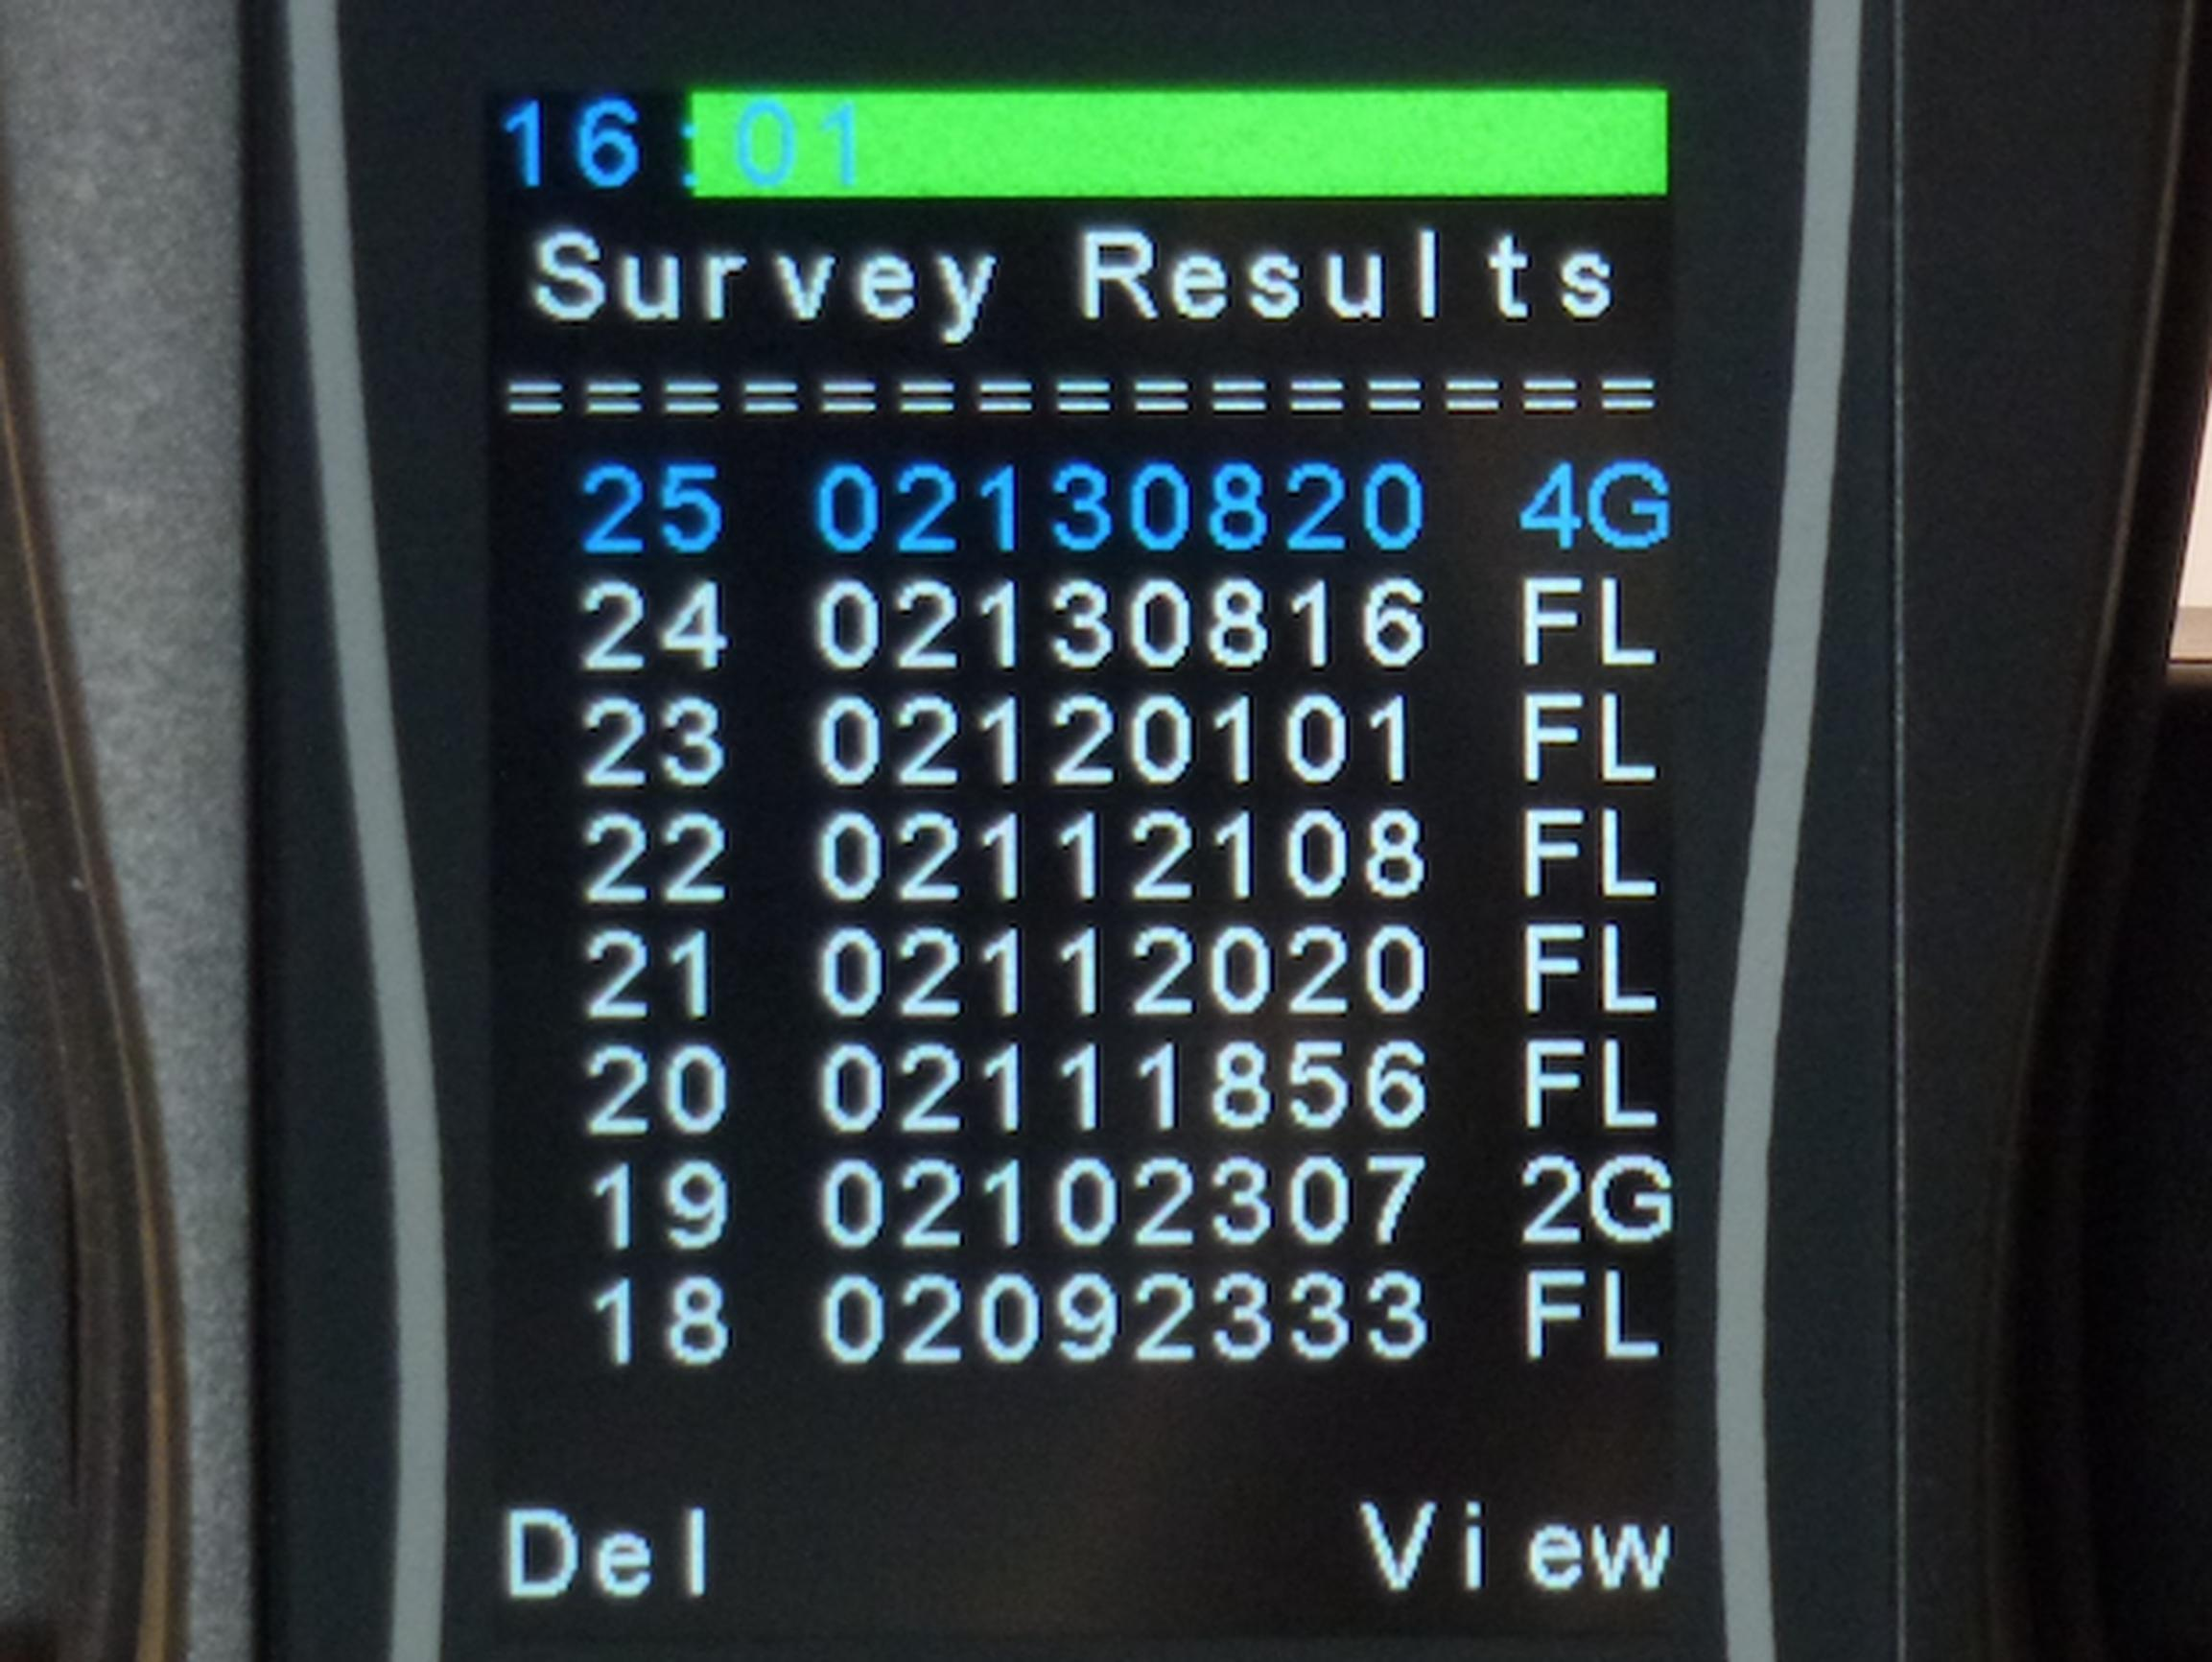 Survey results shown on a SNYPER-LTE Graphyte unit